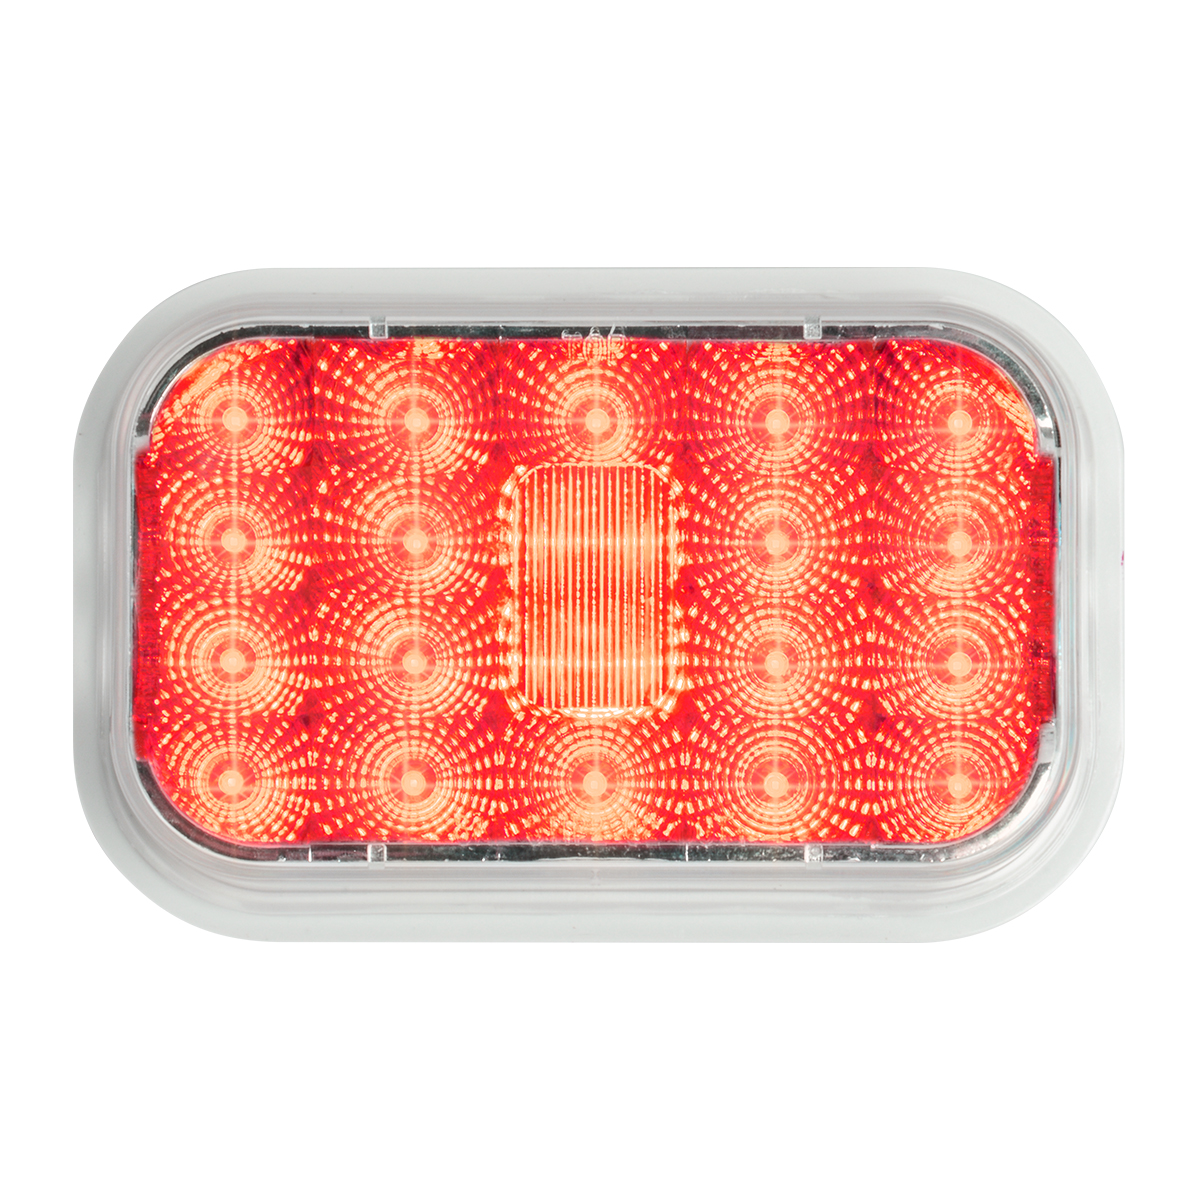 77464 High Profile Rectangular Spyder LED Light in Red/Clear